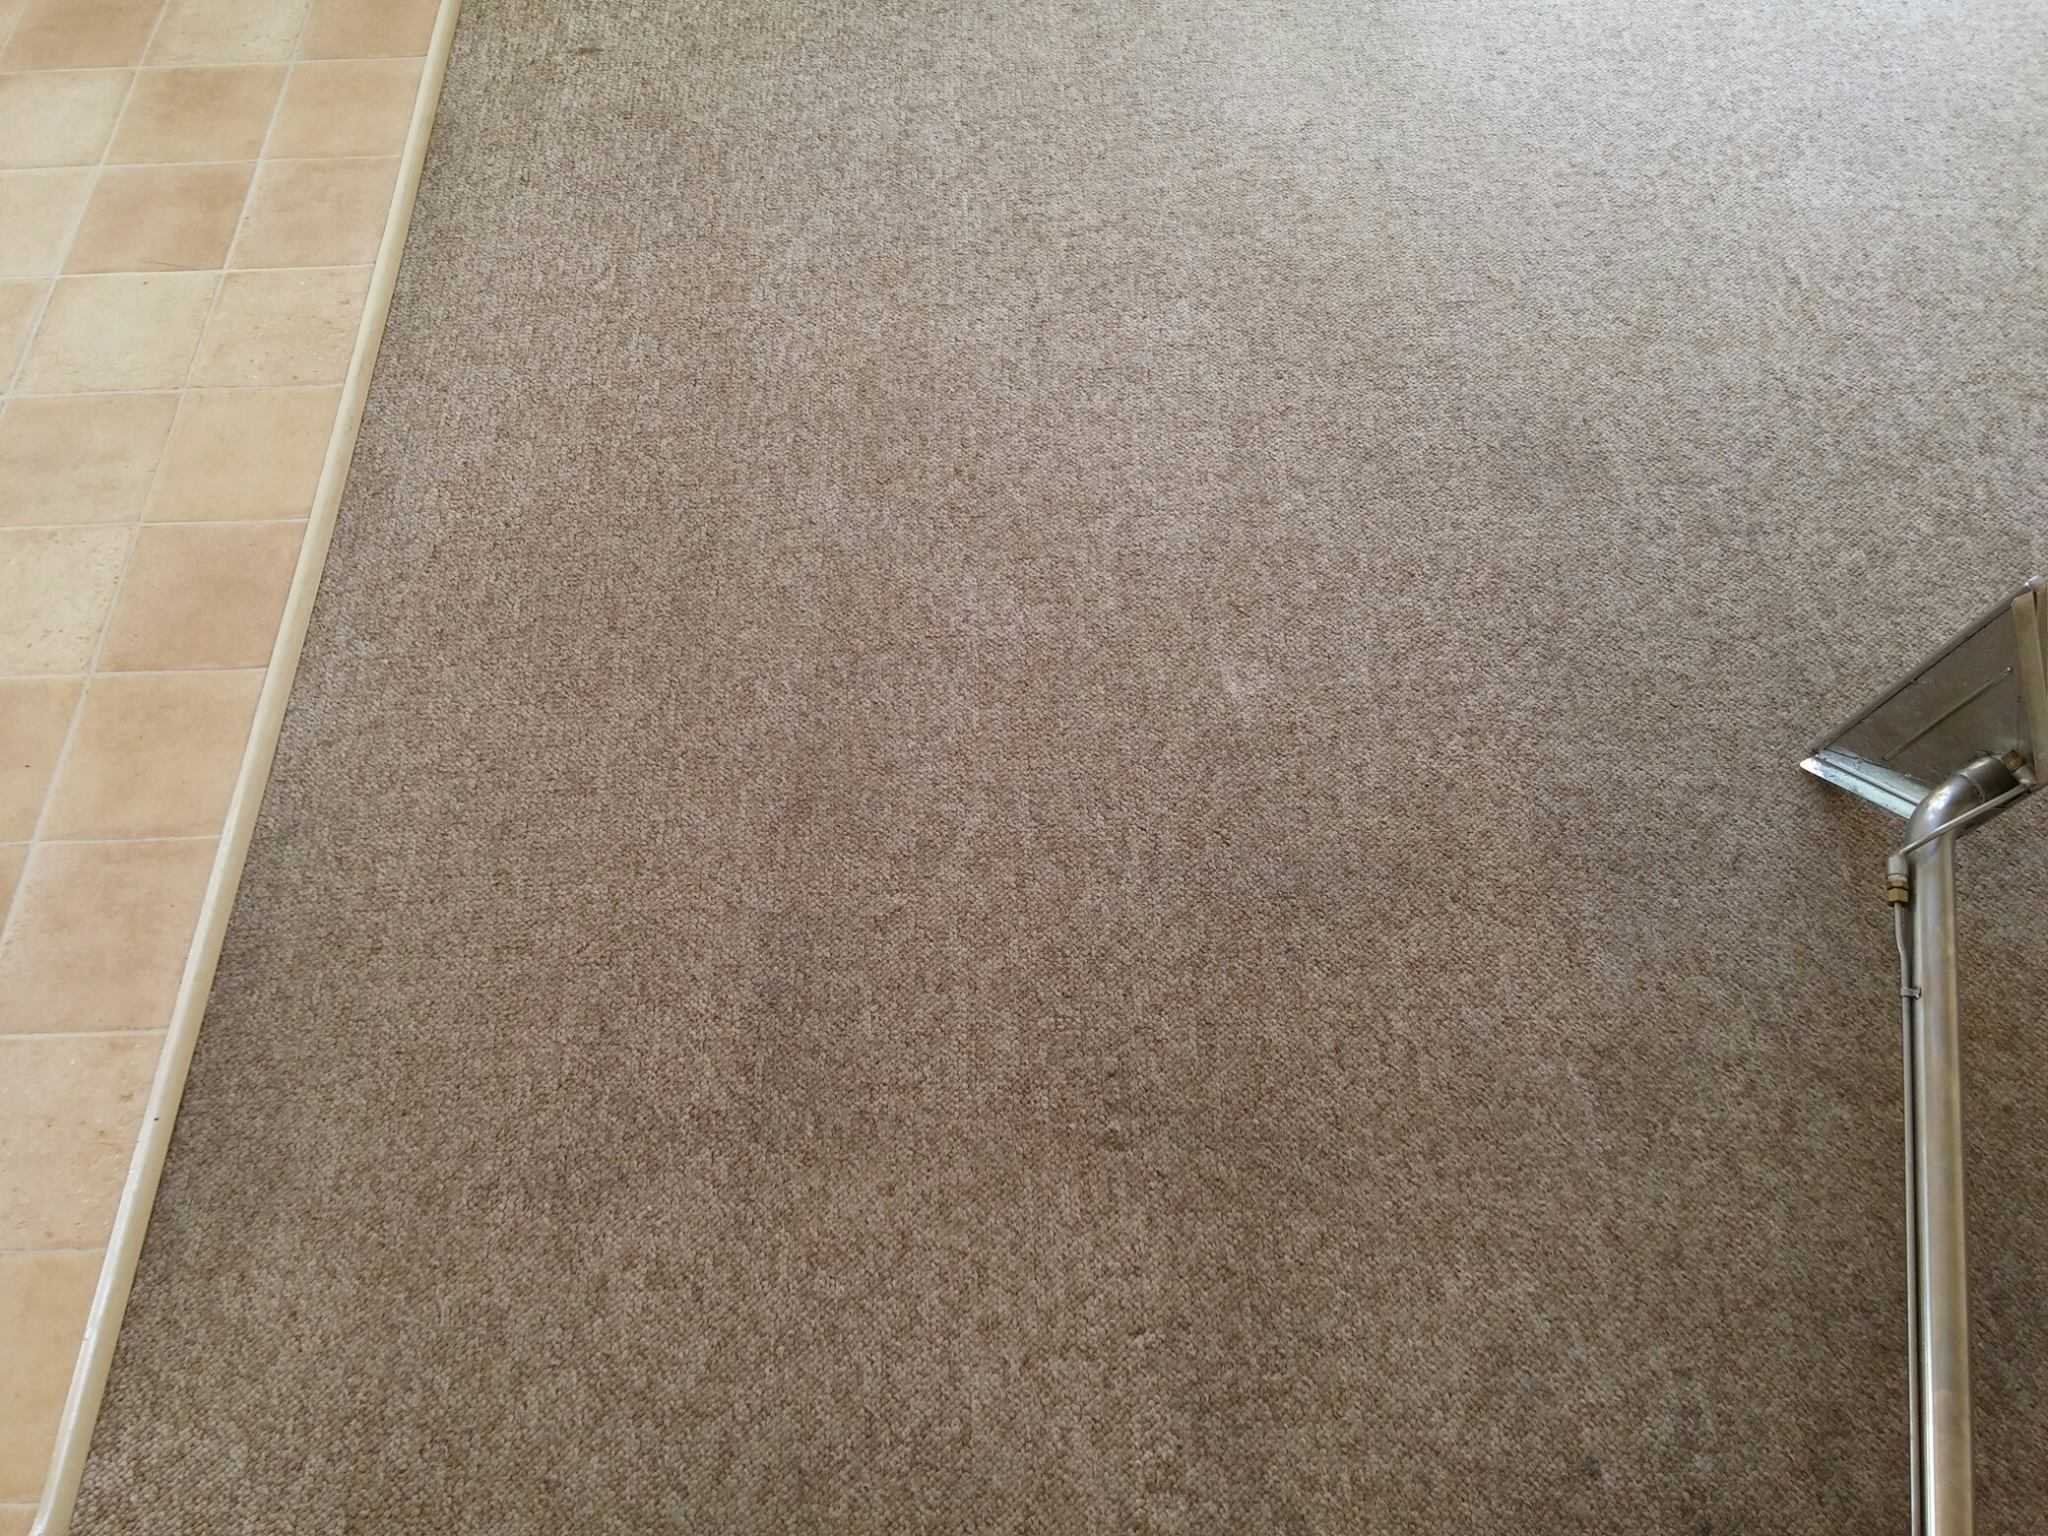 End of lease cleaning perth carpet steam cleaning perth ckf cleaning services provides more than just steam cleaning for your carpet ckfs carpet steam cleaning perth include the following full package to make dailygadgetfo Choice Image